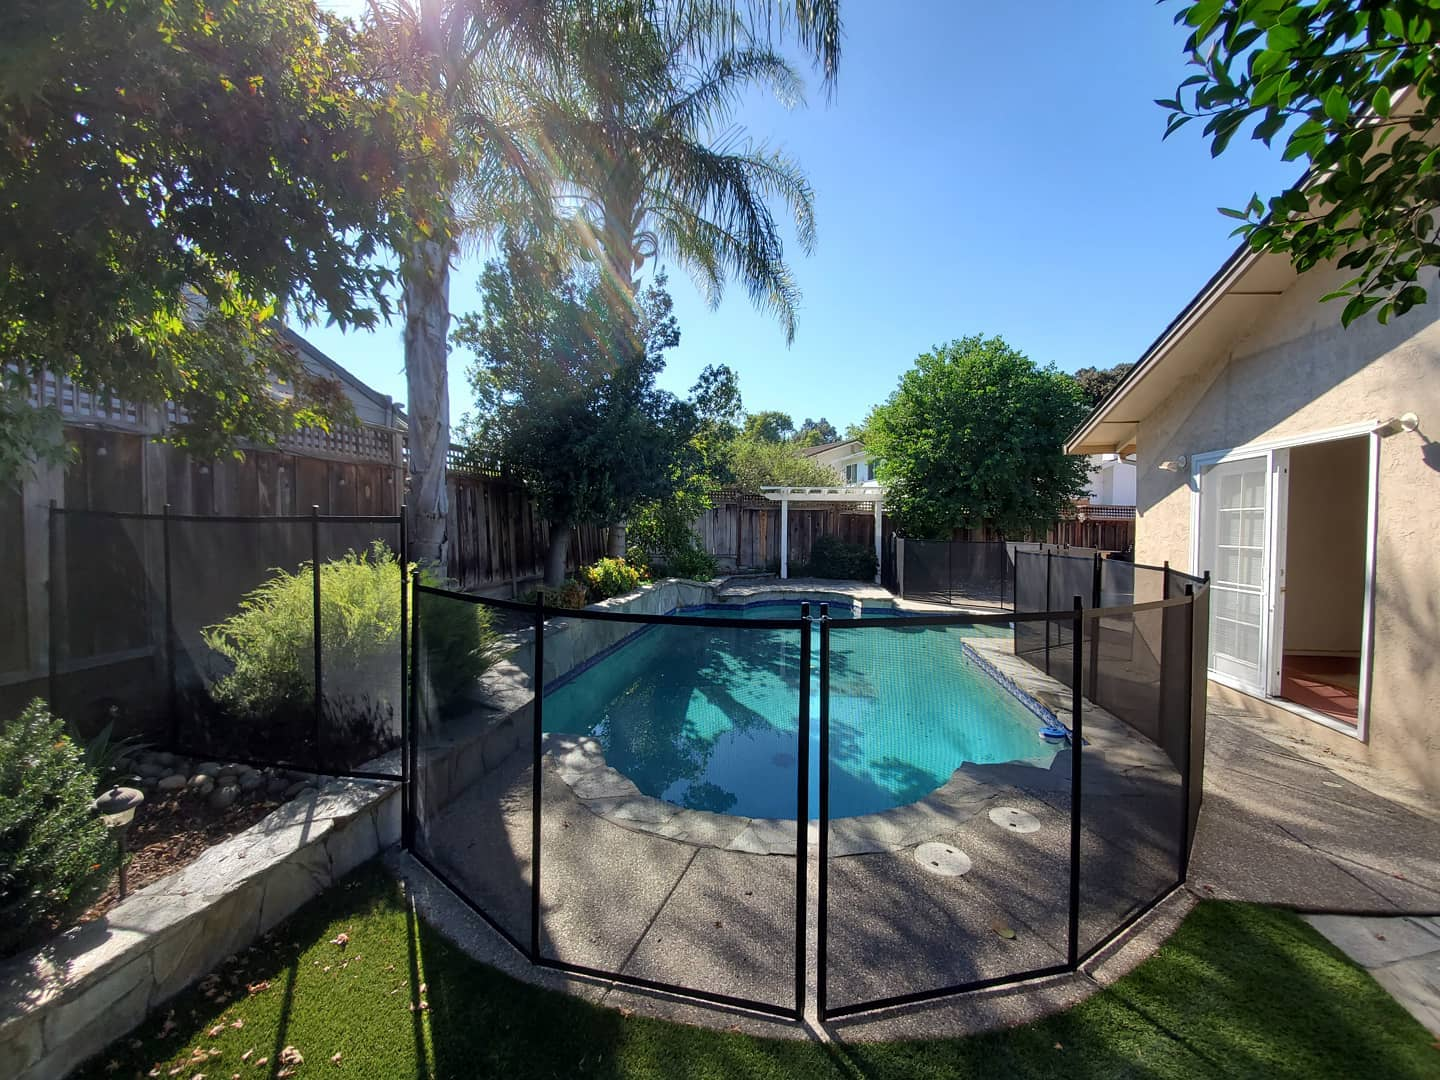 child safety pool fence installed in Stockton, CA